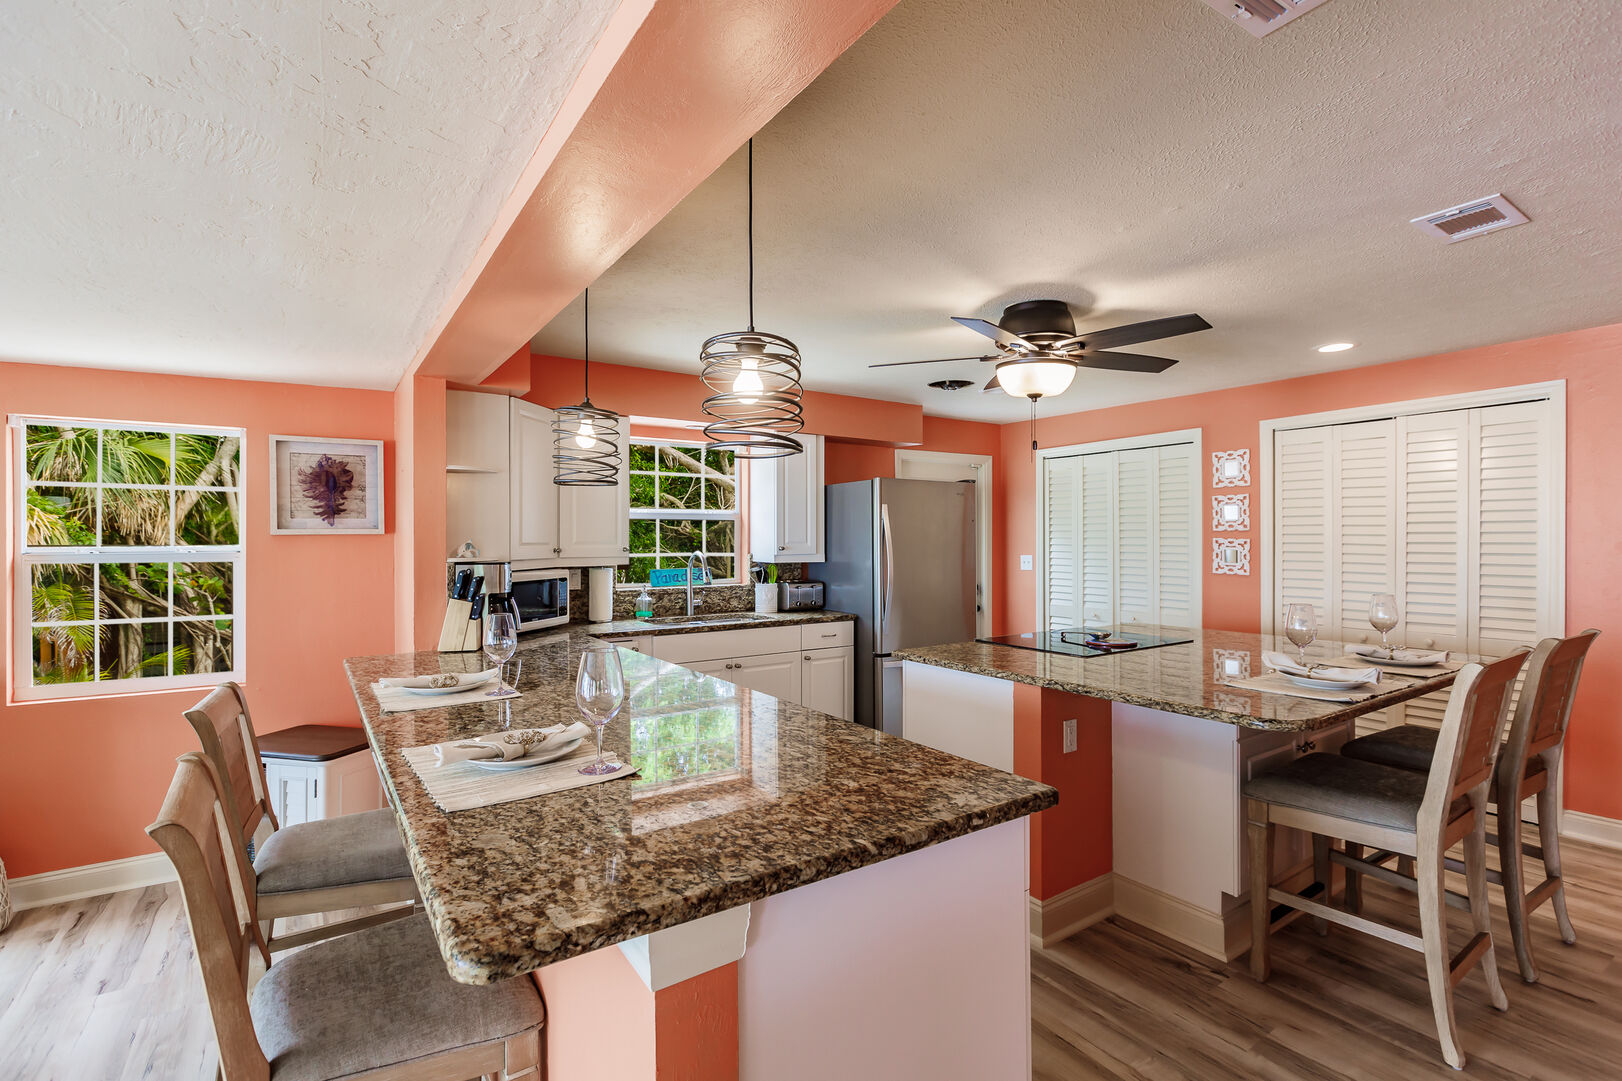 Kitchen And Dining Seating Area Private Beach House Rental in Florida